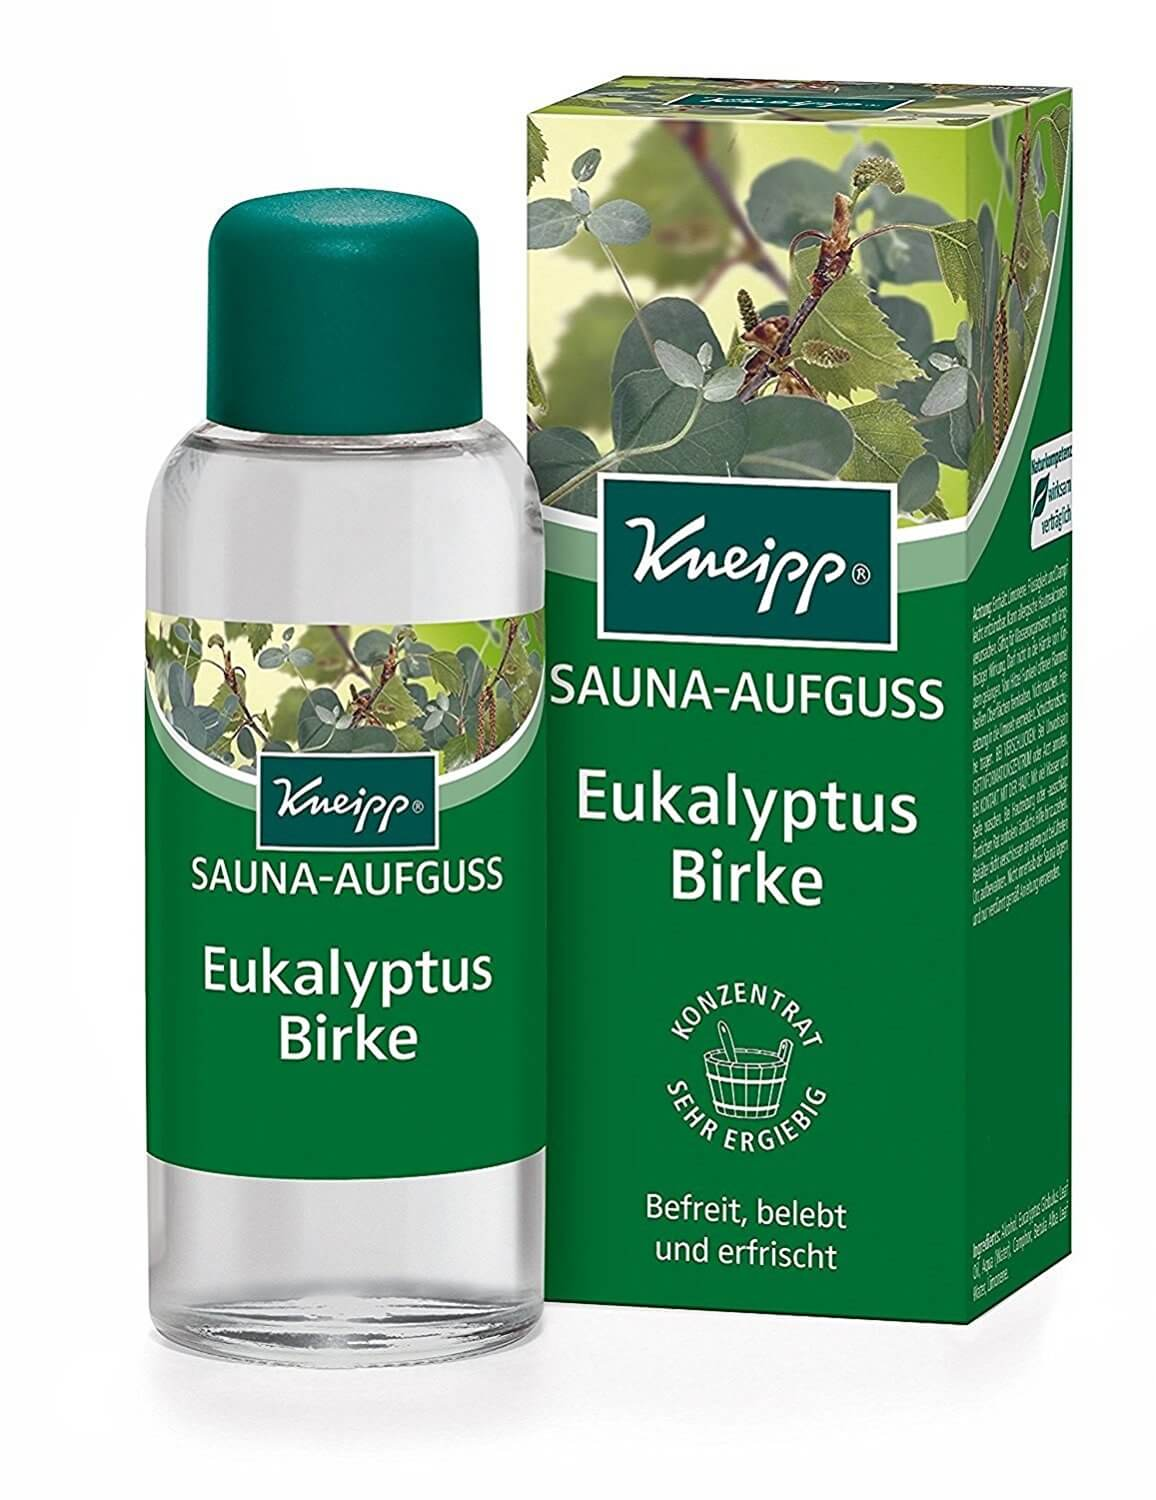 kneipp sauna aufguss sauna le eukalyptus und birke luftreiniger test. Black Bedroom Furniture Sets. Home Design Ideas